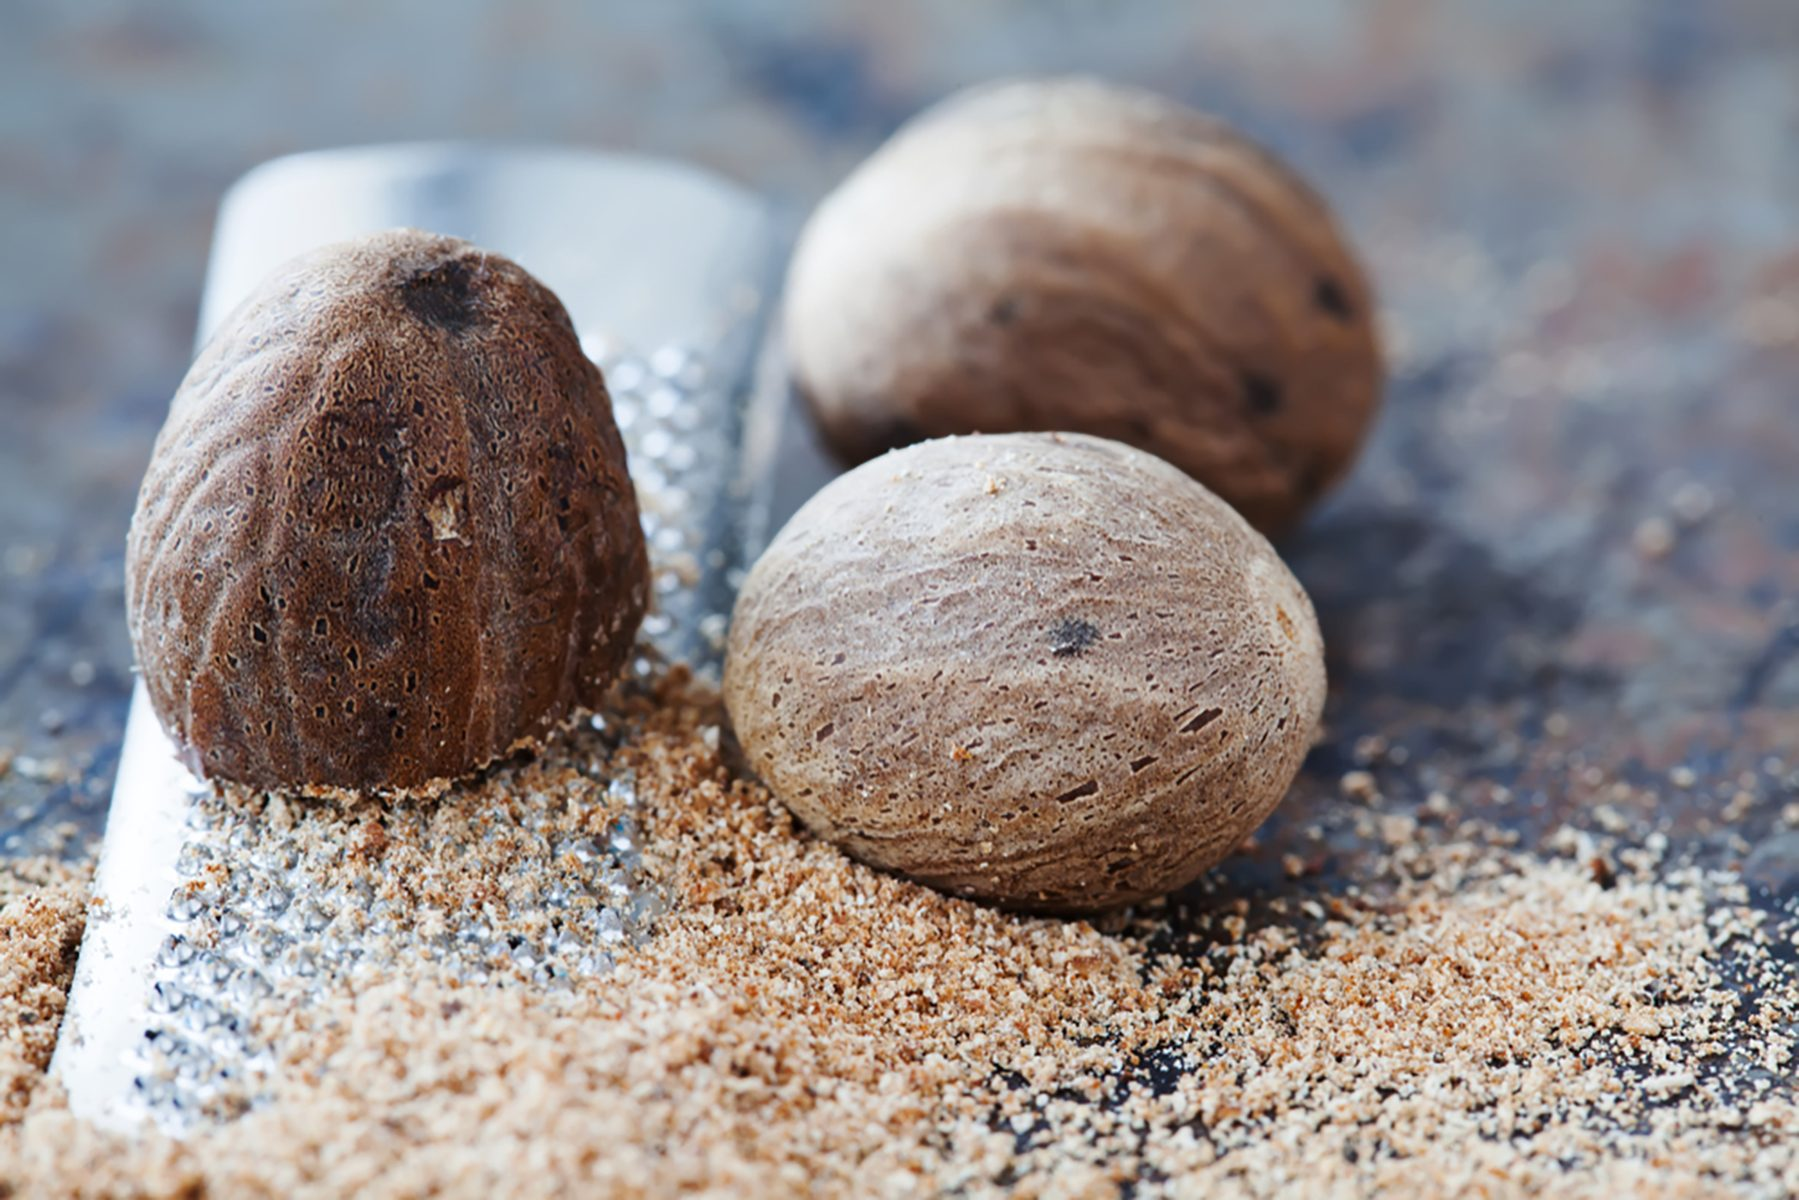 Making nutmeg powder process. Nuts silver grater. Kitchen still life photo. Shallow depth of field, aged brown rusty background. Selective focus.; Shutterstock ID 1059835649